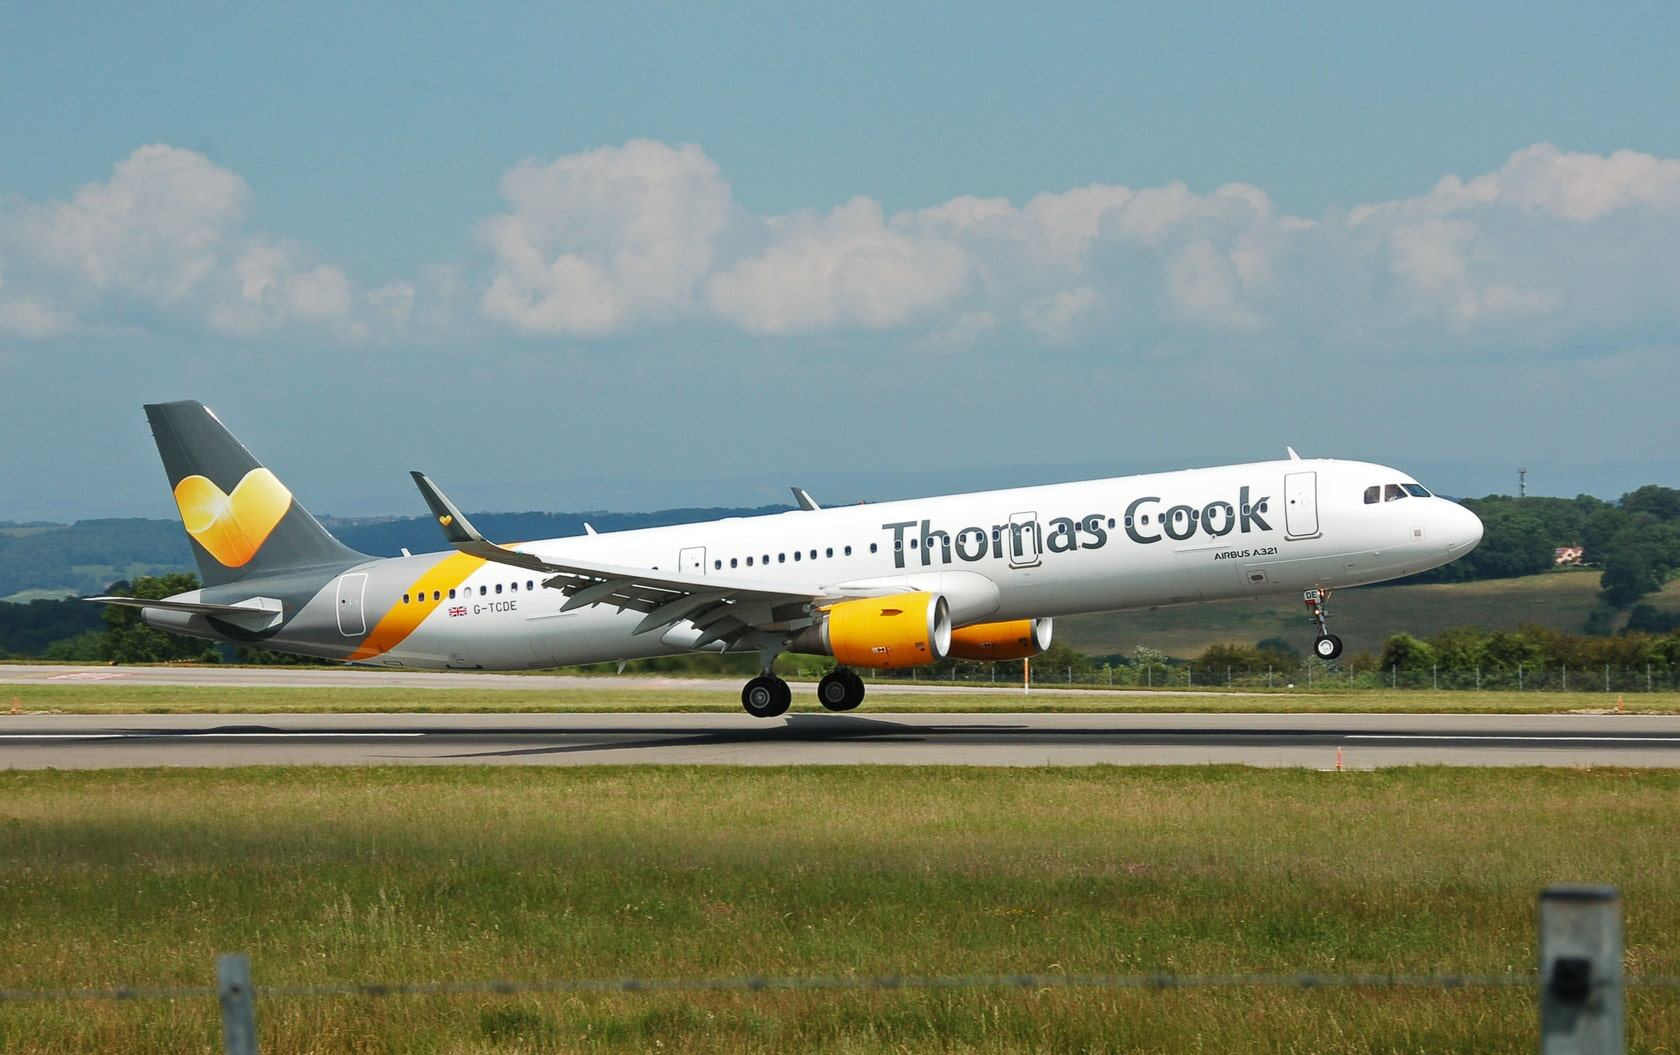 Thomas Cook Airlines flight attendant dies in Phuket hotel room | The Thaiger